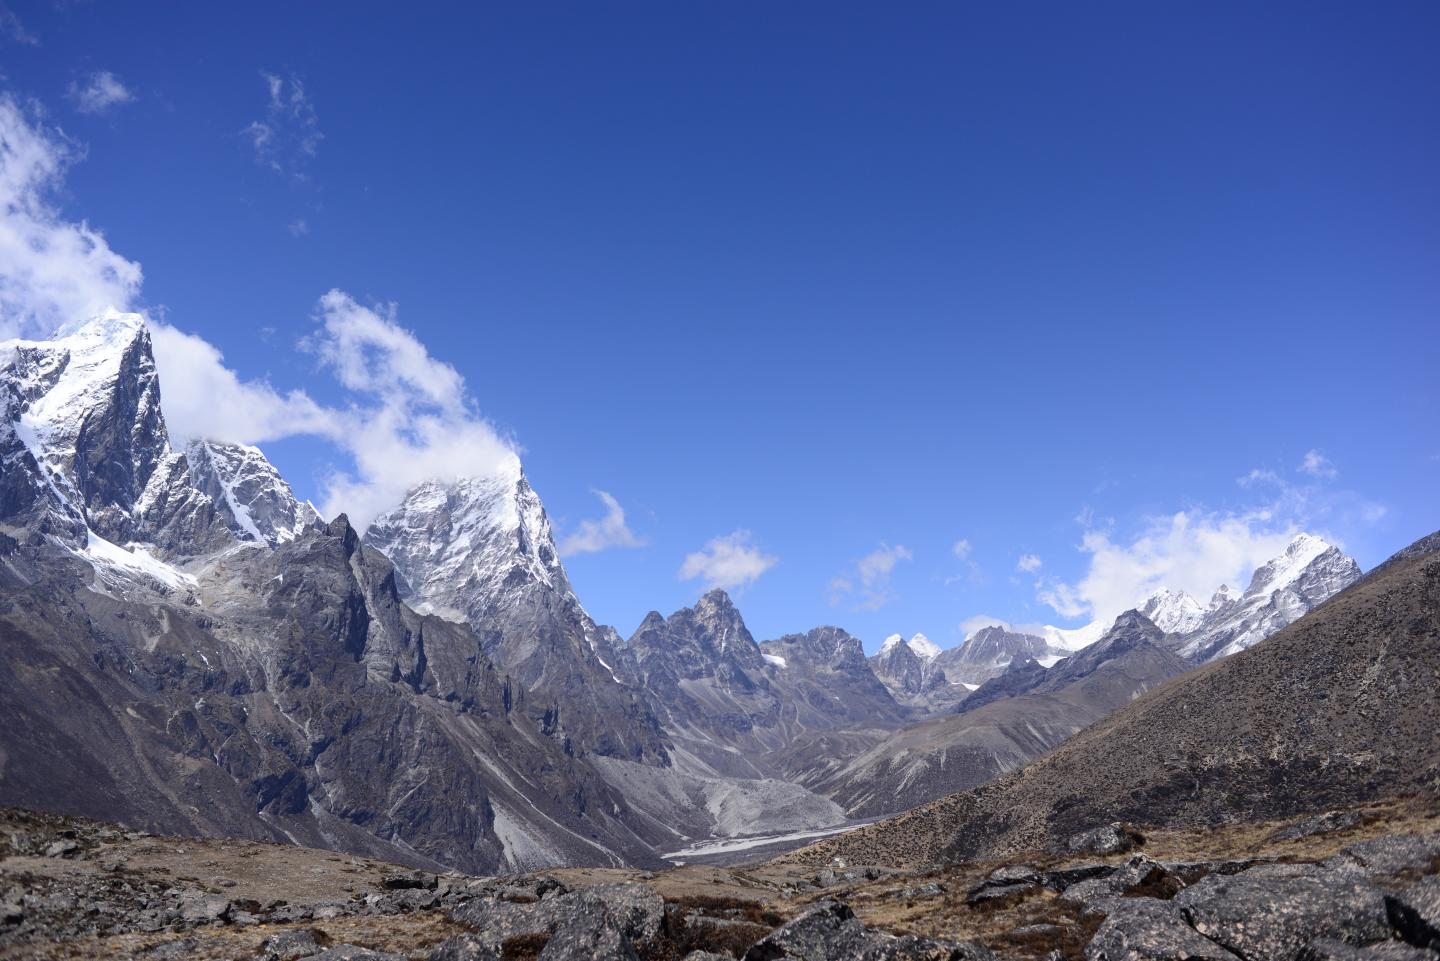 View towards Khumbu and Cholatse from below Ama Dablam at about 4,900 m showing typical subnival vegetation in the foreground. Photo credit: Karen Anderson